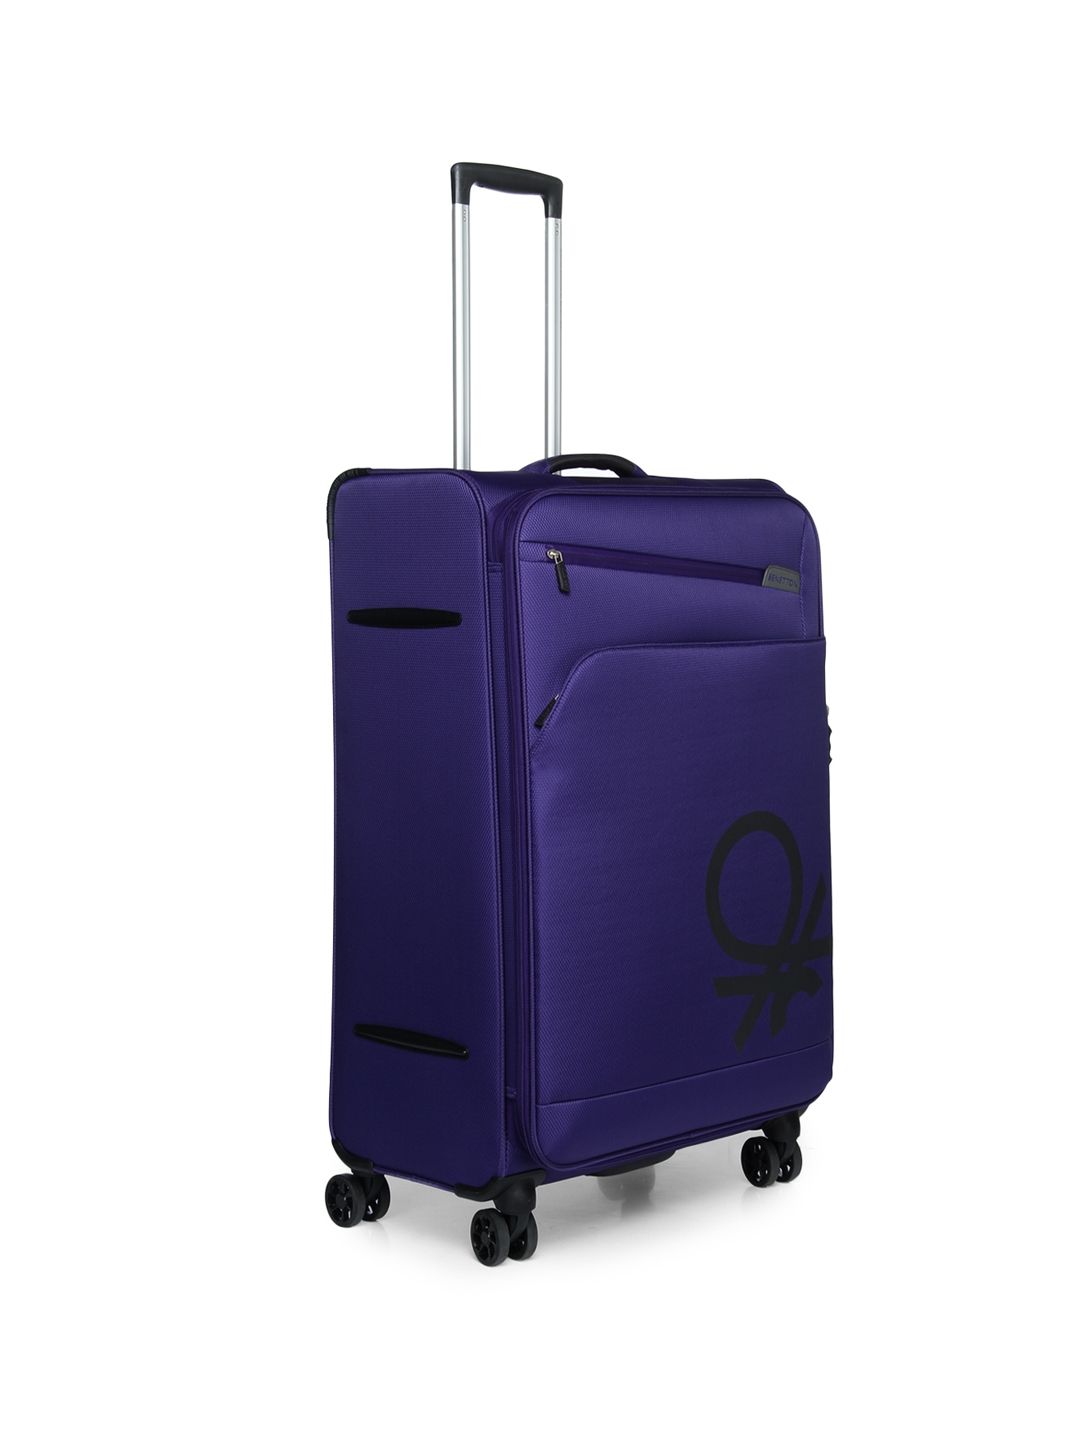 24761e68dcd4 Buy United Colors Of Benetton Unisex Purple Large Trolley Suitcase ...